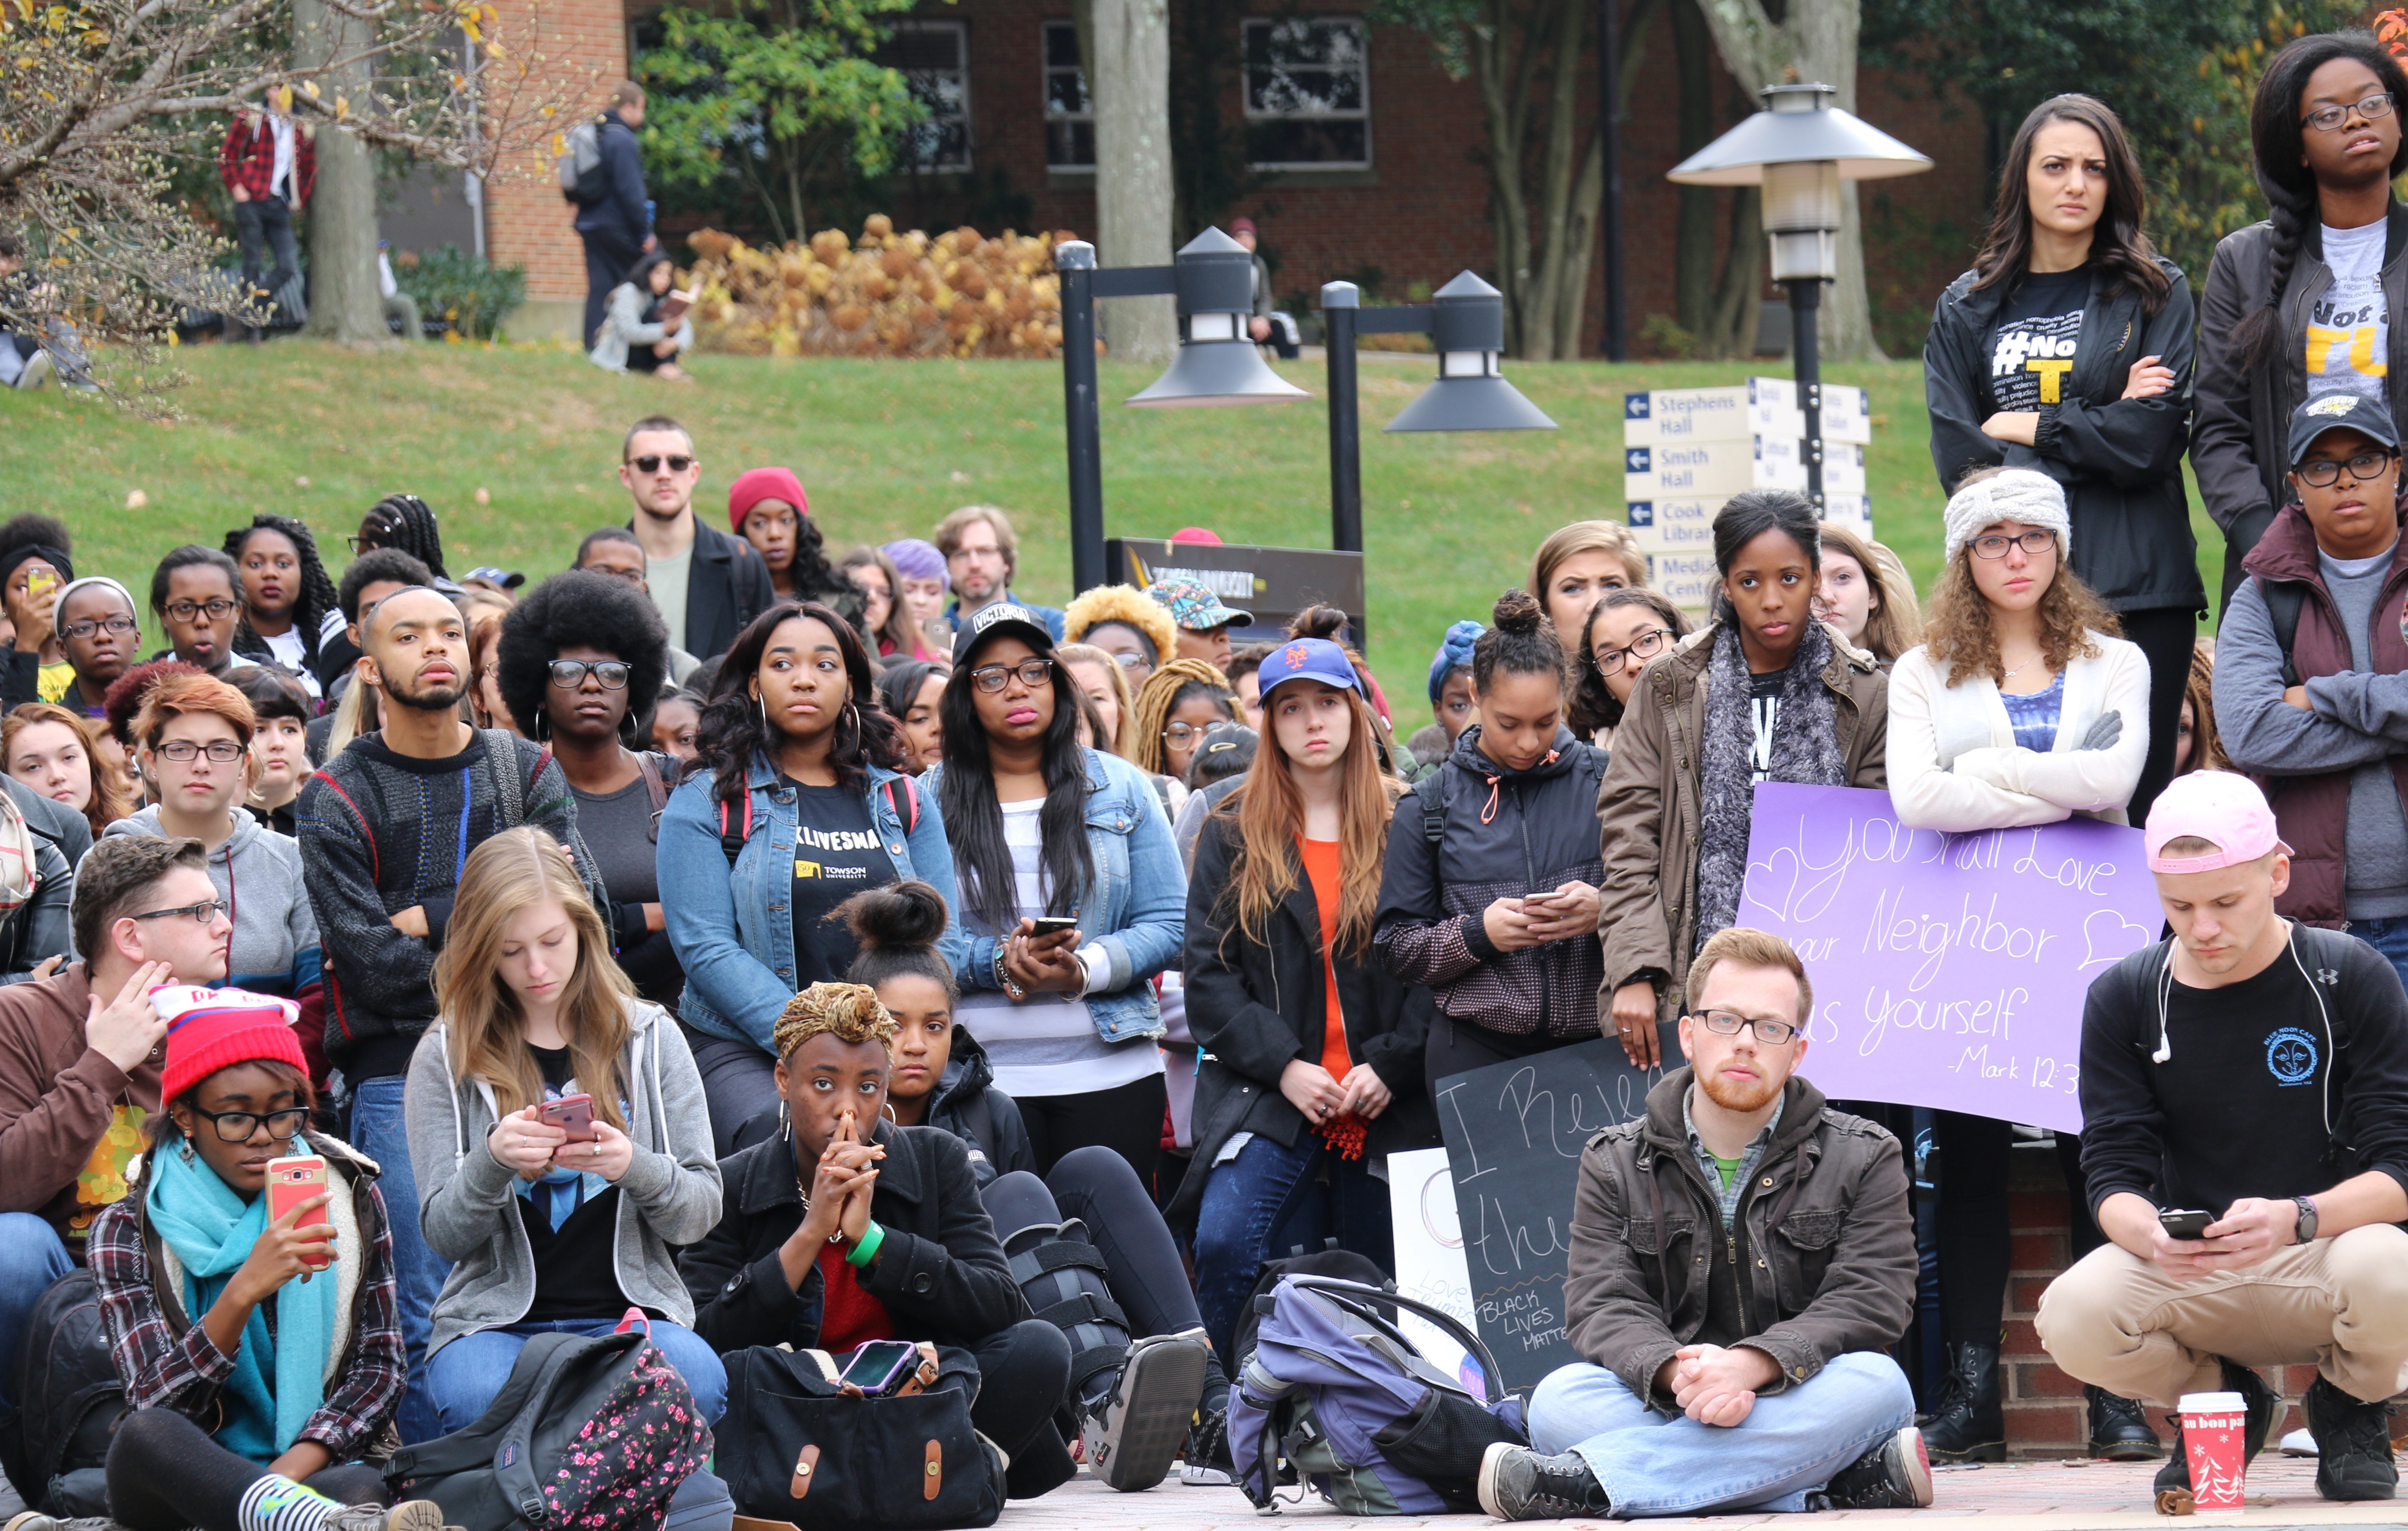 Towson University students listen to speakers at Freedom Square during an anti-Trump walkout Monday. Photo by Tracy Smith.